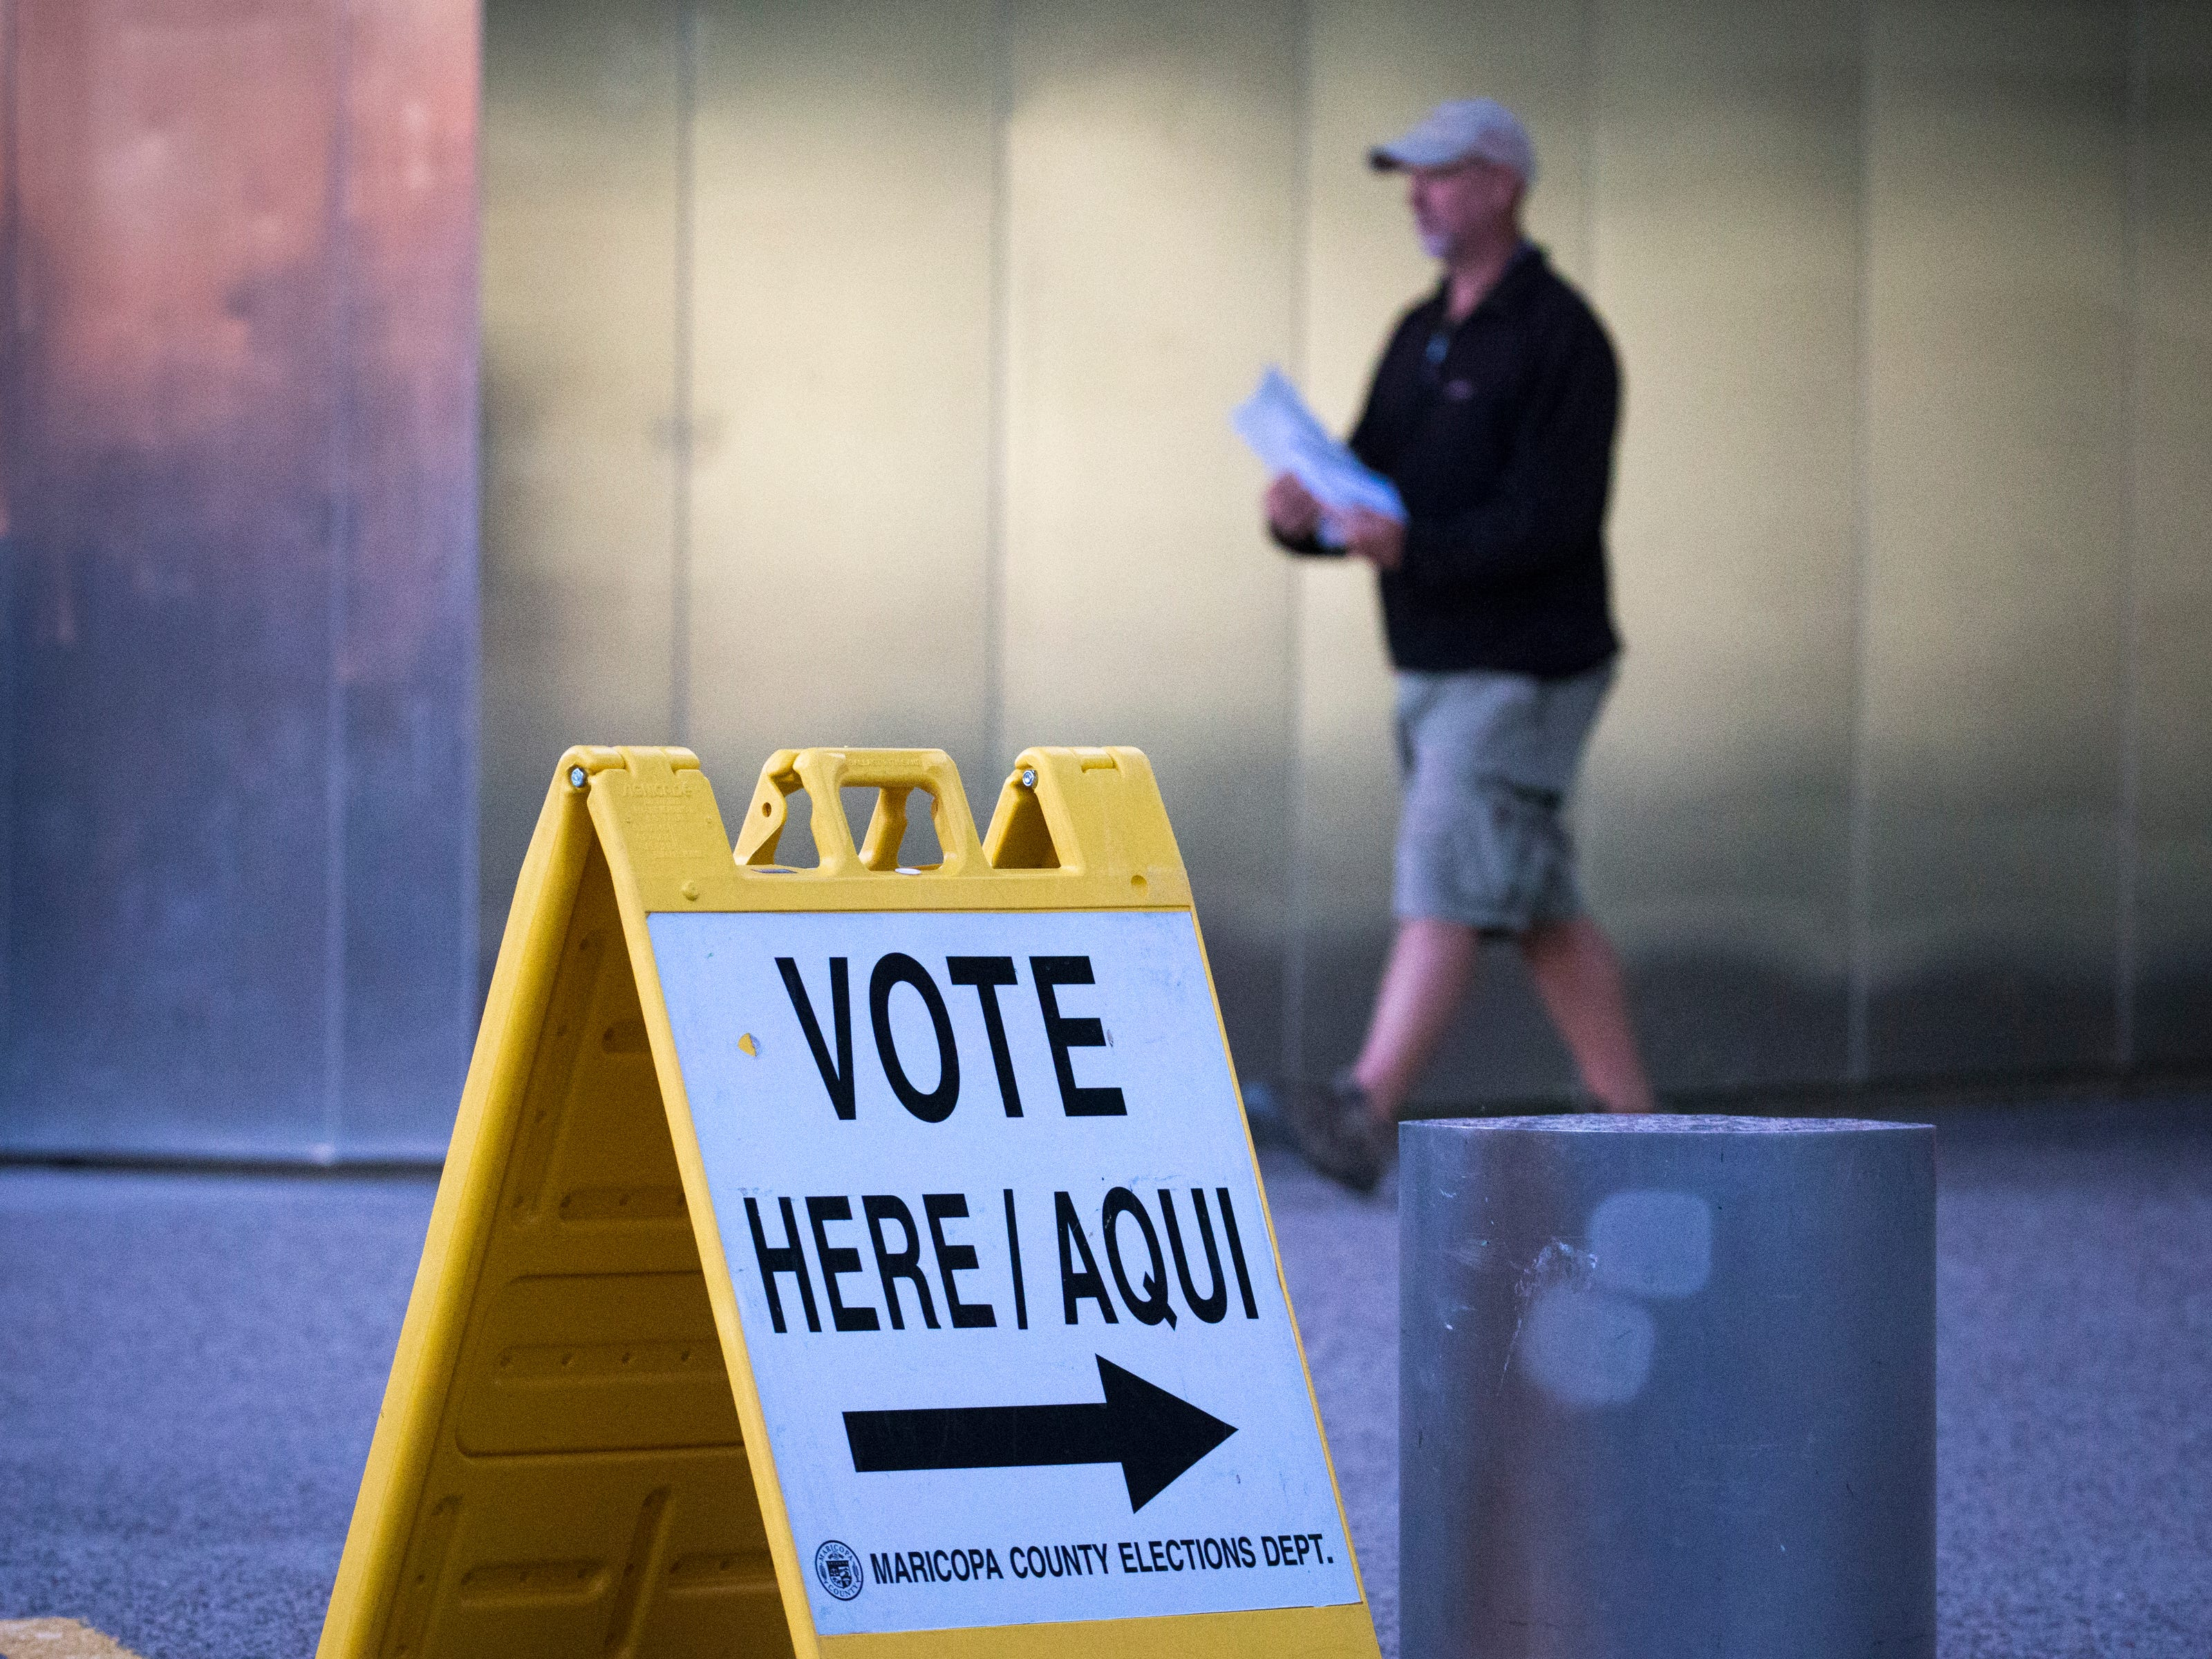 A voter leaves the polling place after casting his ballot, Nov. 6, 2018 at the Burton Barr Library, 1221 N. Central Ave. in Phoenix.